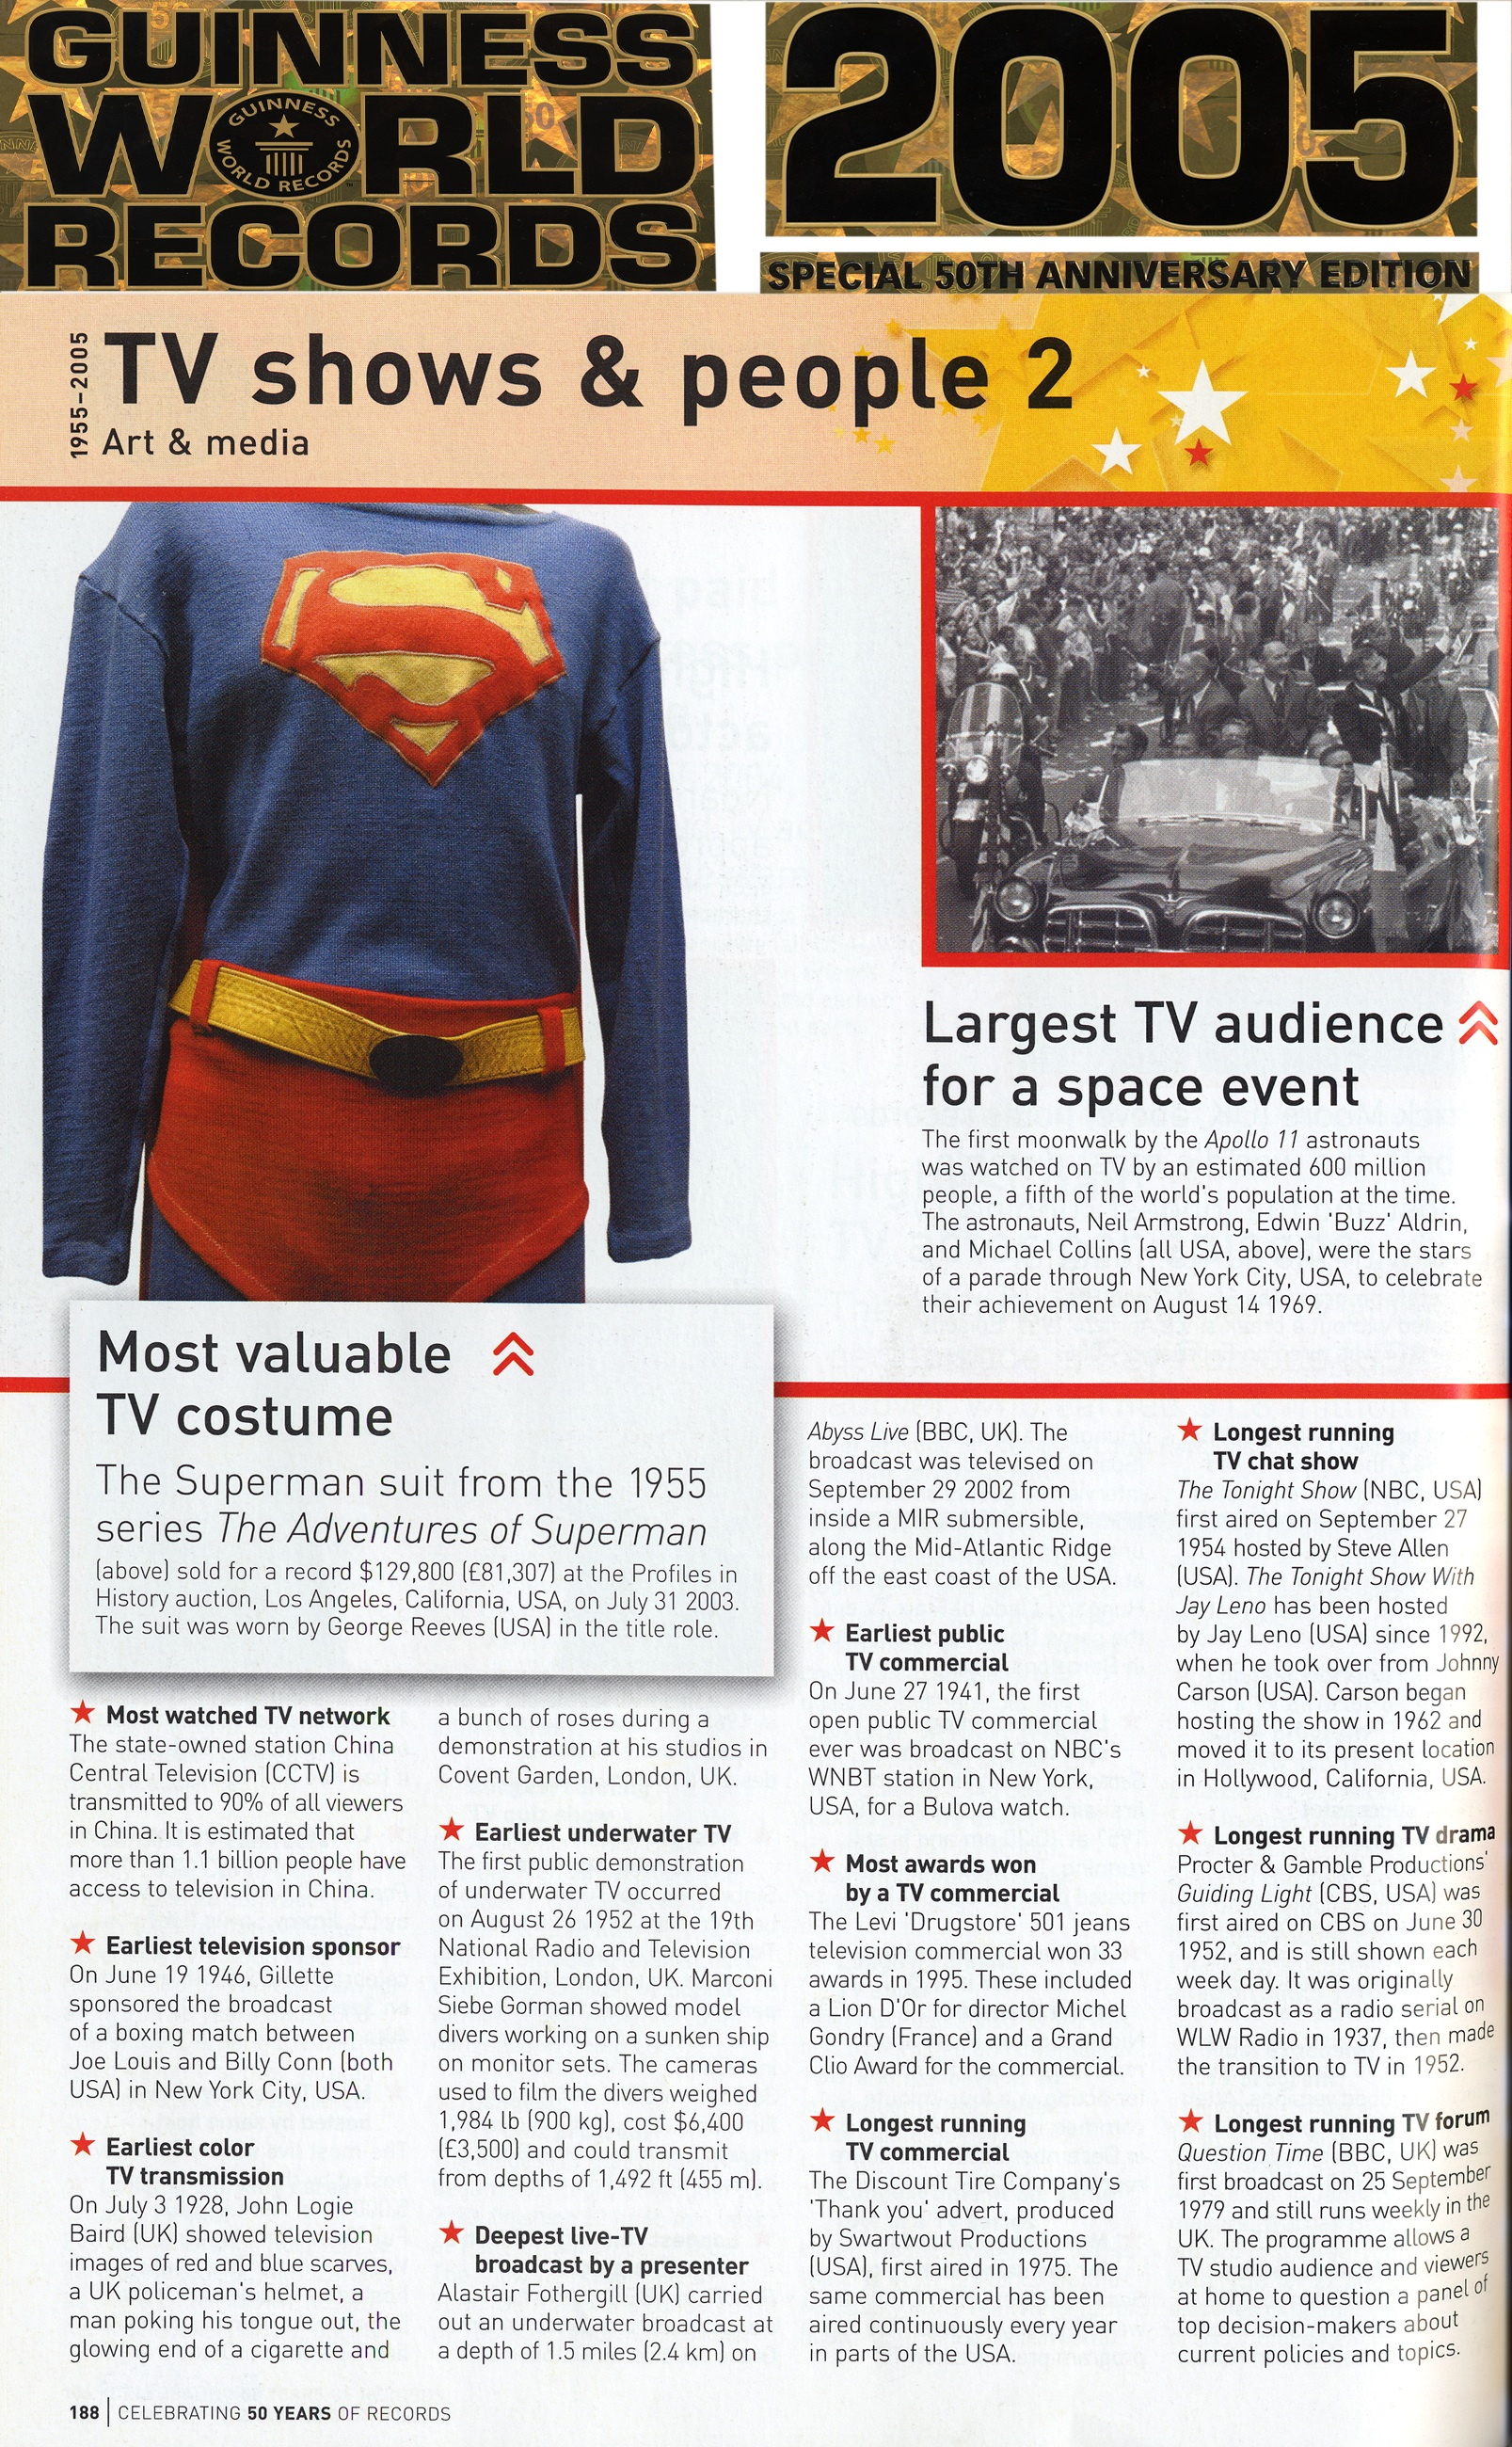 guinness world records tv shows and people 2, a photo of supermans costume and a photo of the largest tv audience for a space event